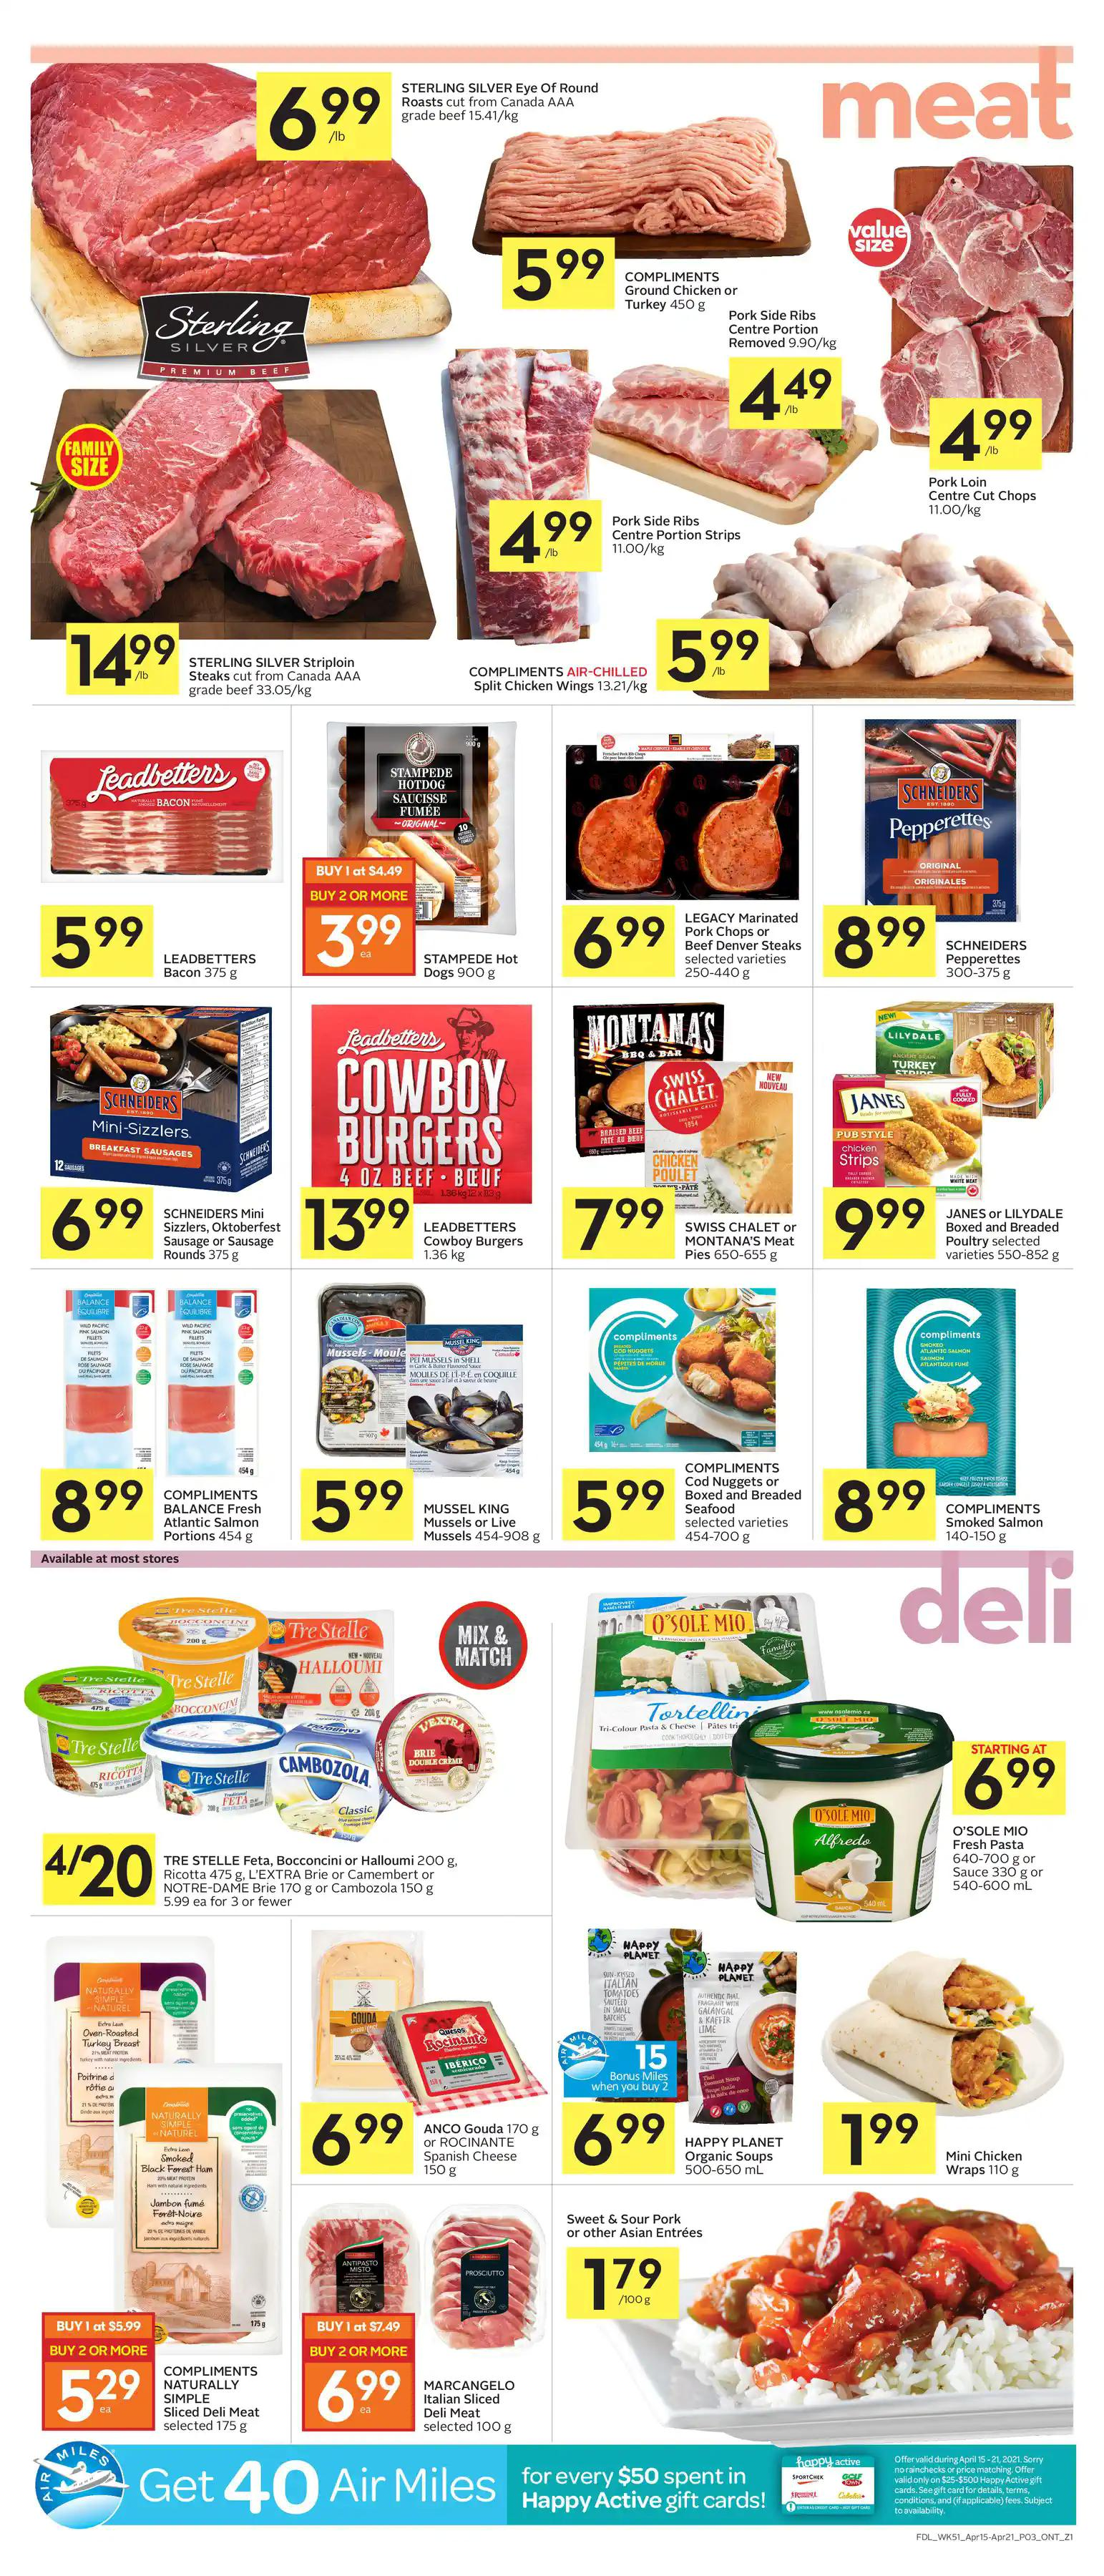 Foodland - Weekly Flyer Specials - Page 3